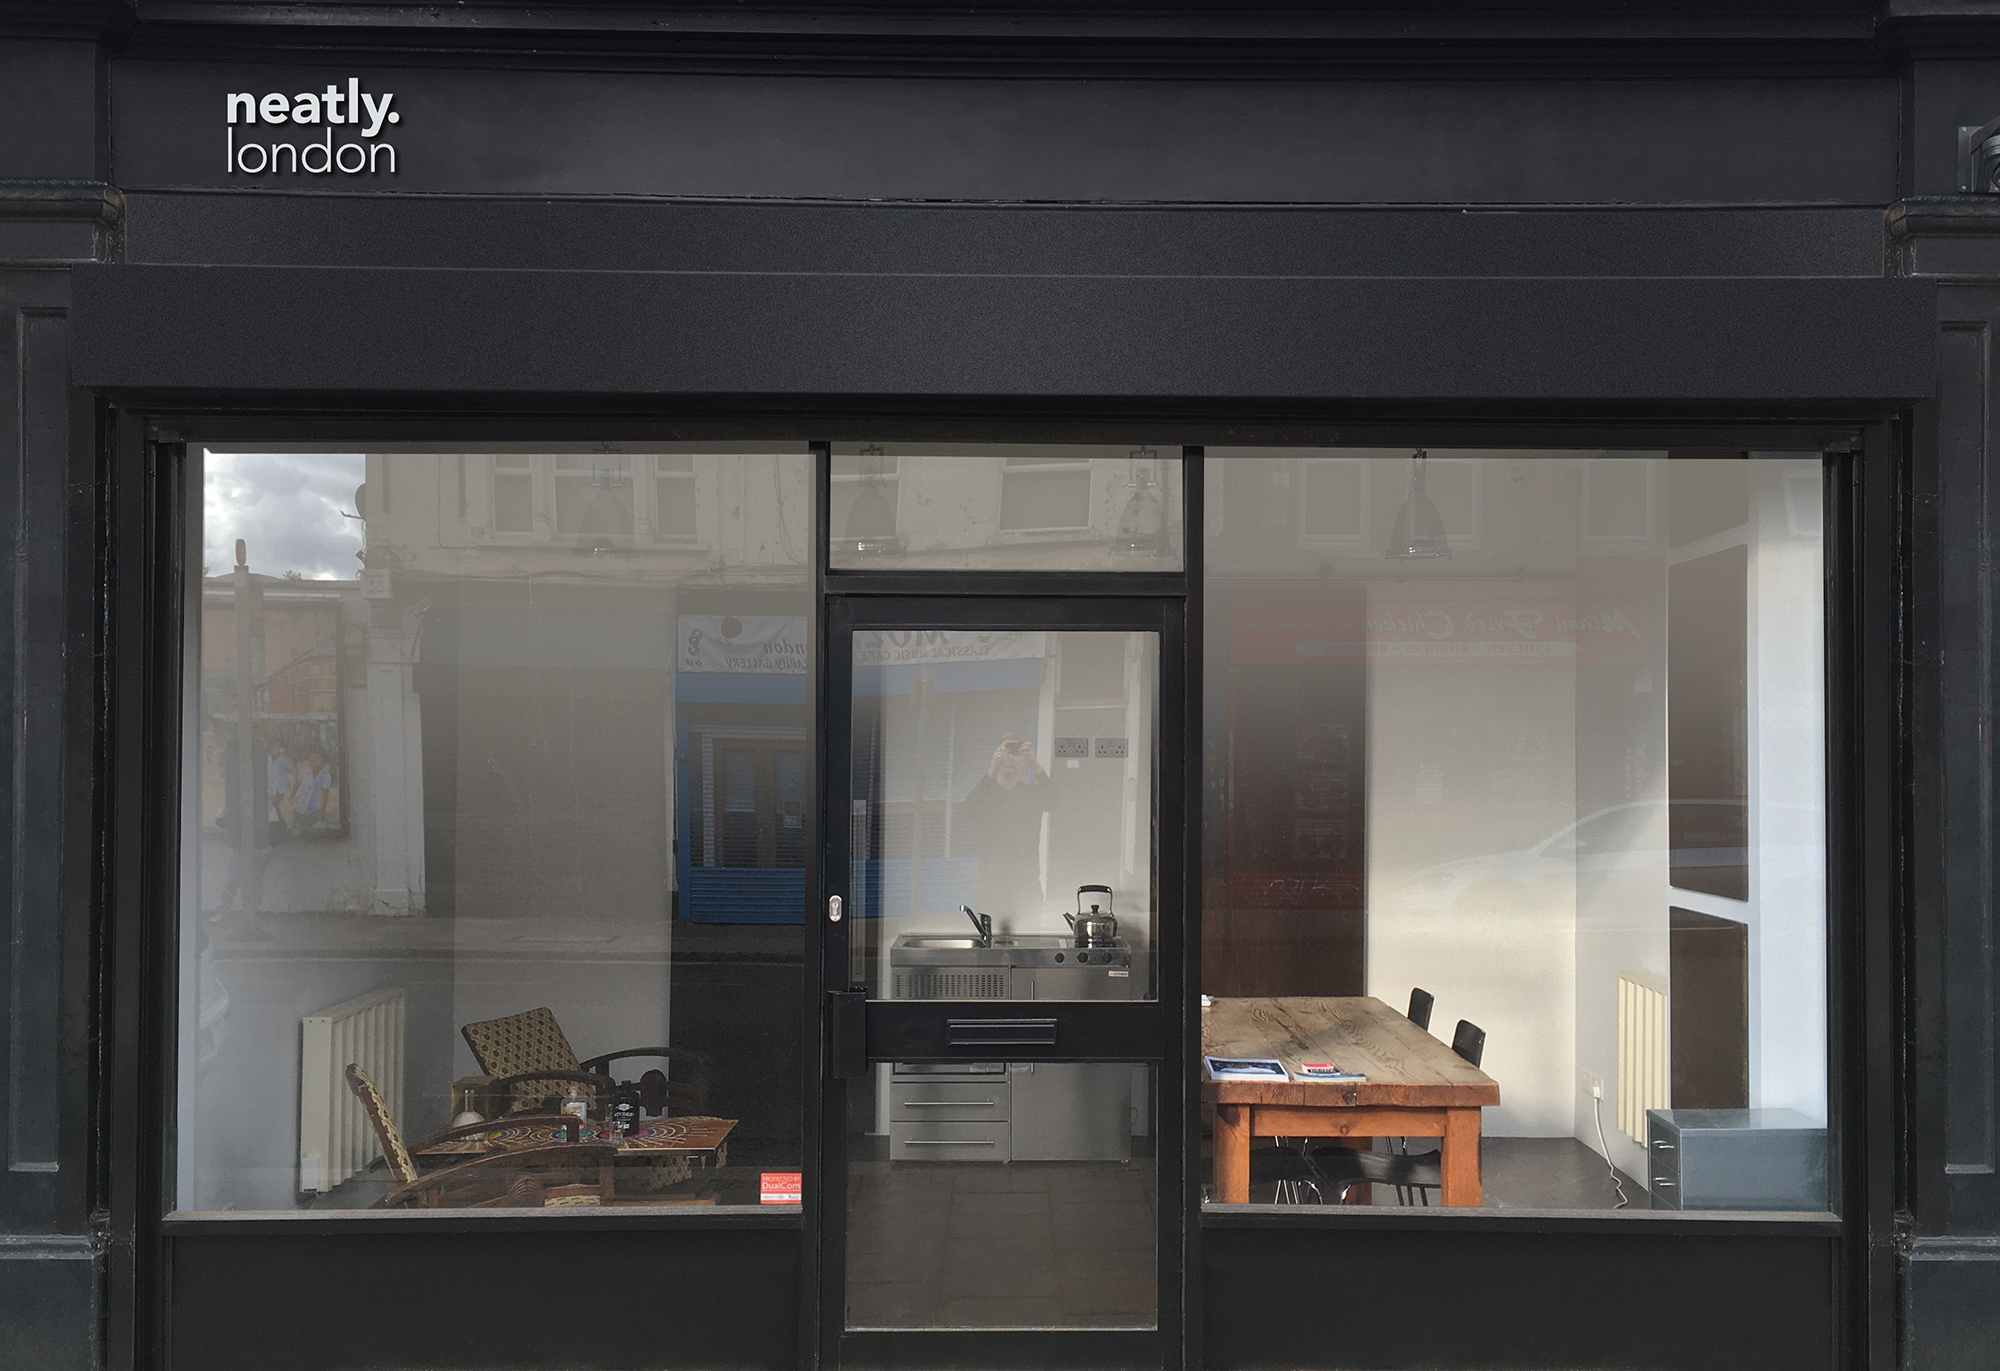 neatly london shop front